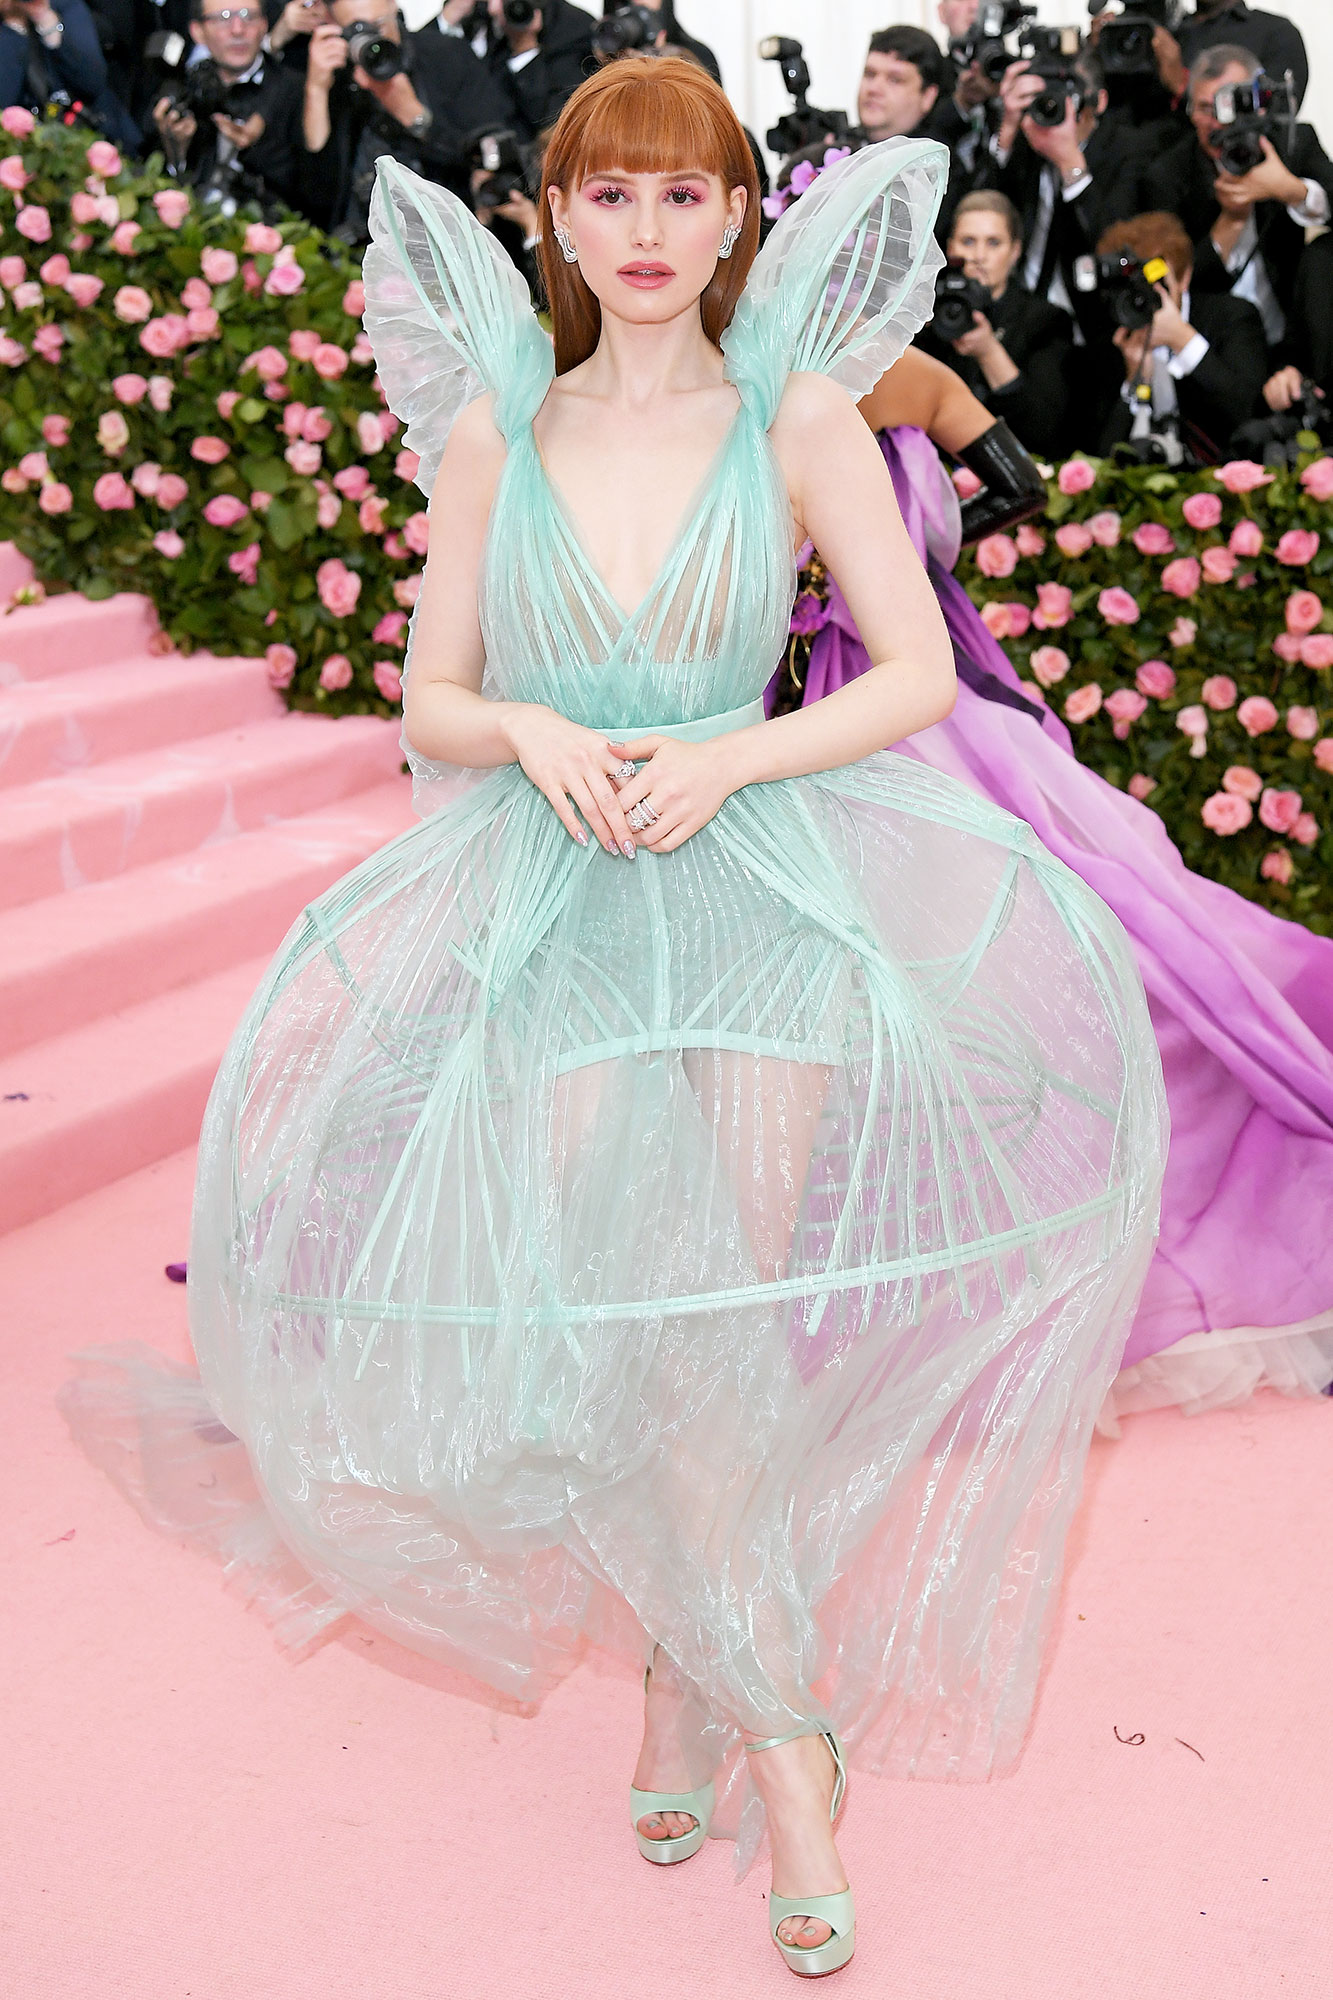 Madelaine Petsch met gala 2019 - Wearing a sculptural light blue tulle gown with Jimmy Choo platforms.